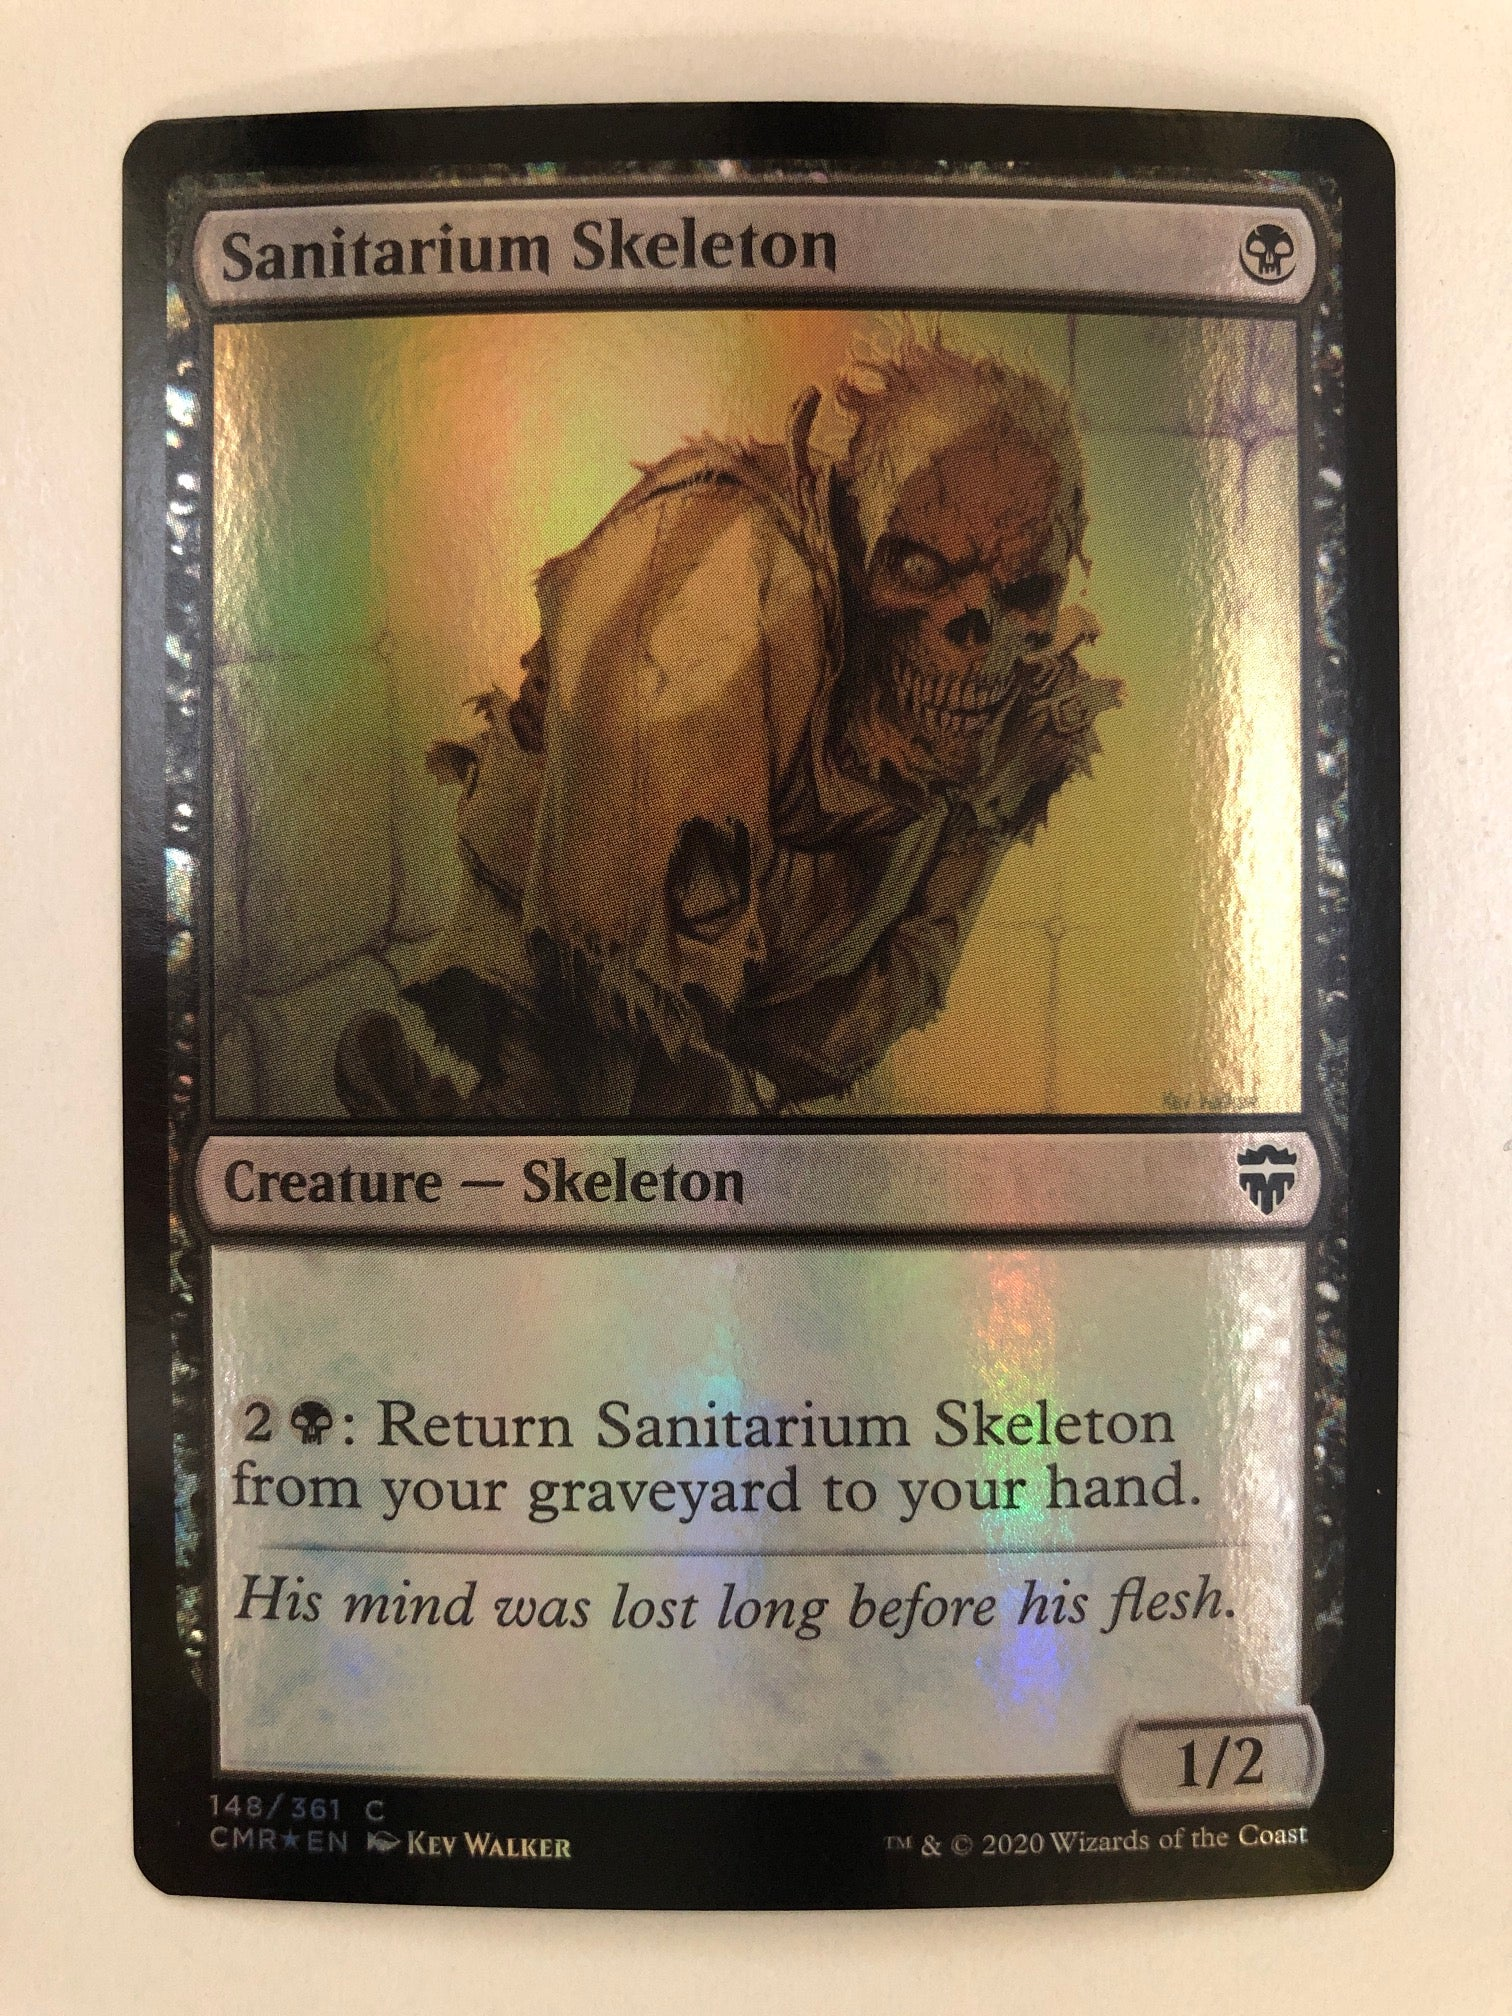 Sanitarium Skeleton - CMR 148/361 C (Foil) (M/NM)